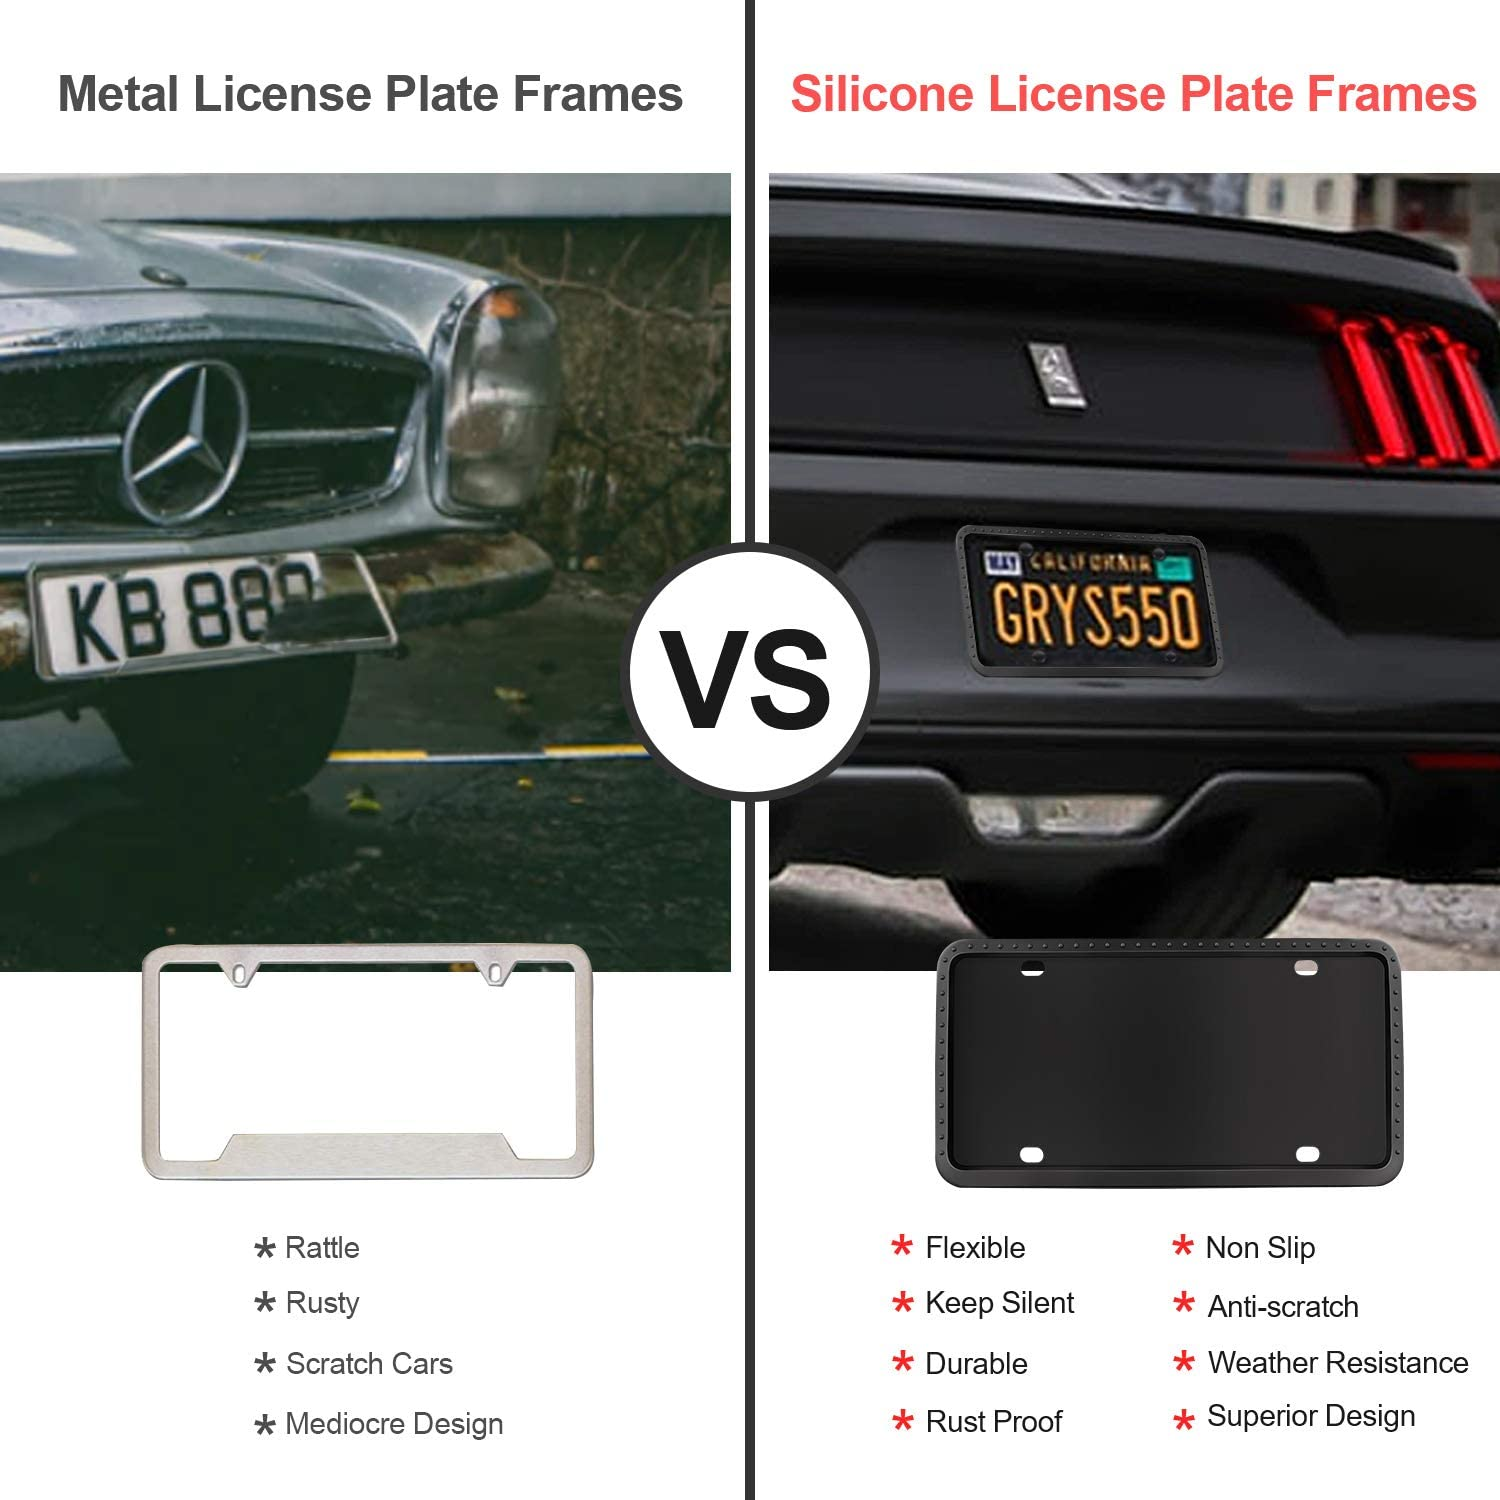 Black Whekeosh License Plate Frame 2 Pcs Black License Plate Frame for Cars Rust-Proof Weather-Proof License Plate Holder Silicone License Plate Frames with Mounting Accessories